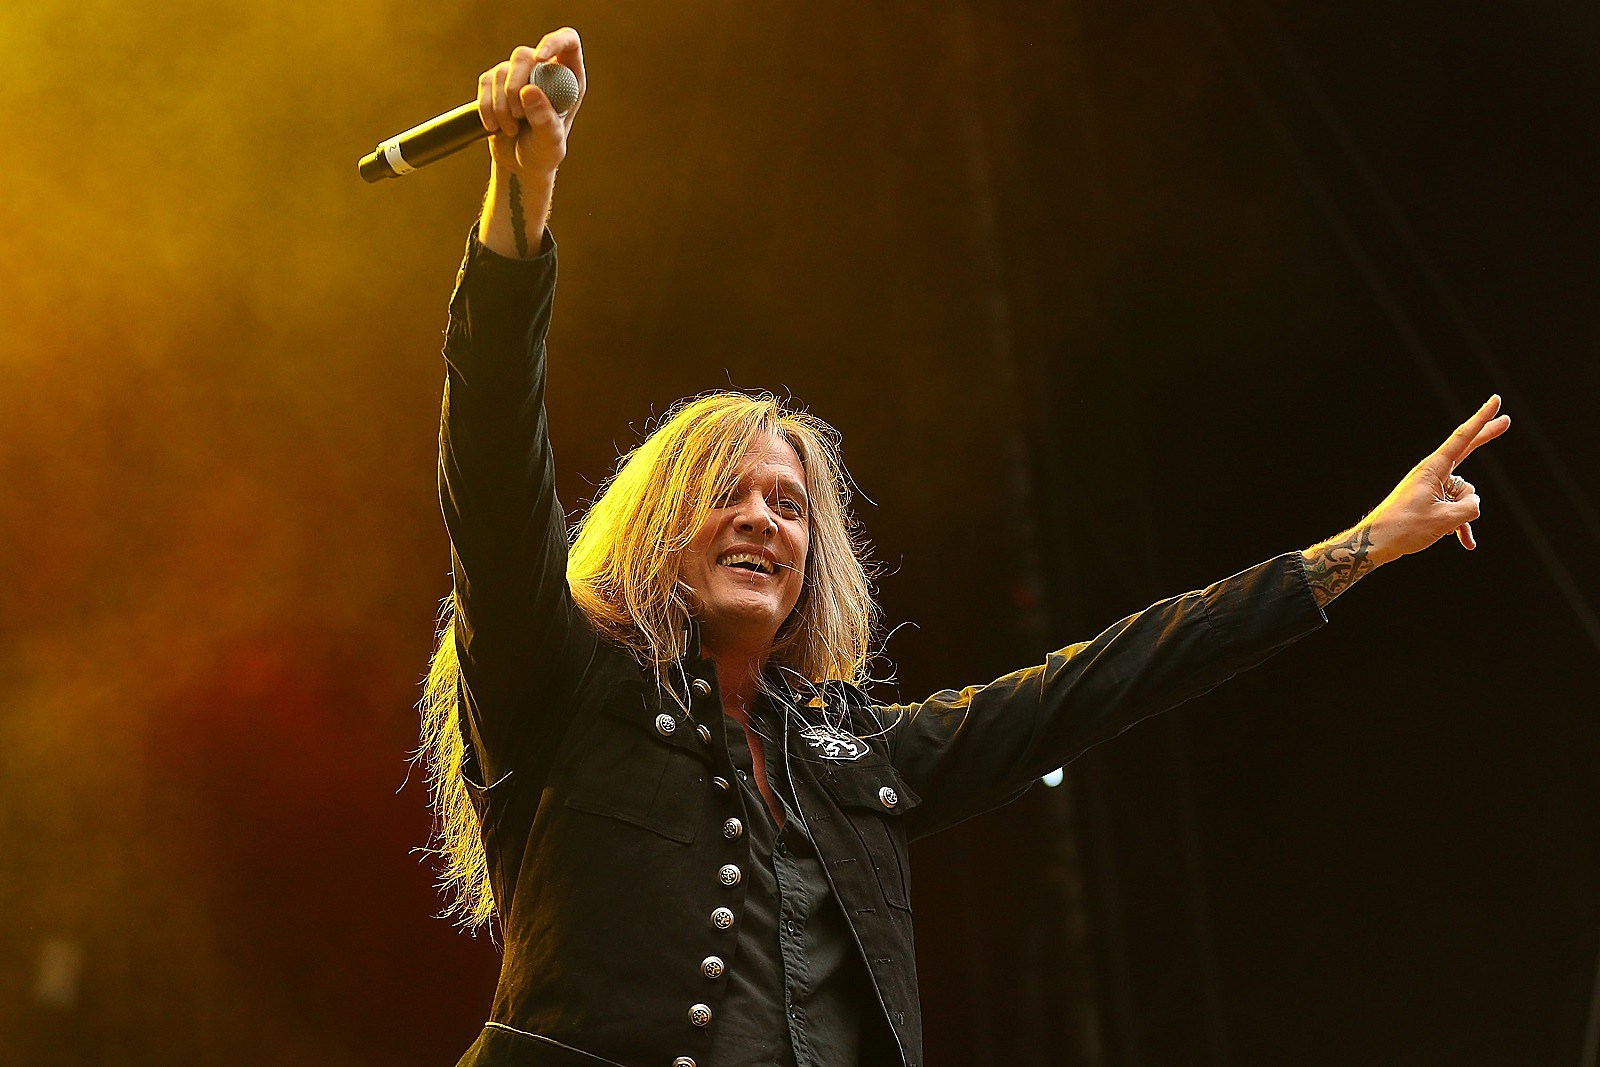 Sebastian Bach Talks Professional Jealousy, Skid Row and Being the Last of a Dying Breed: Exclusive Interview